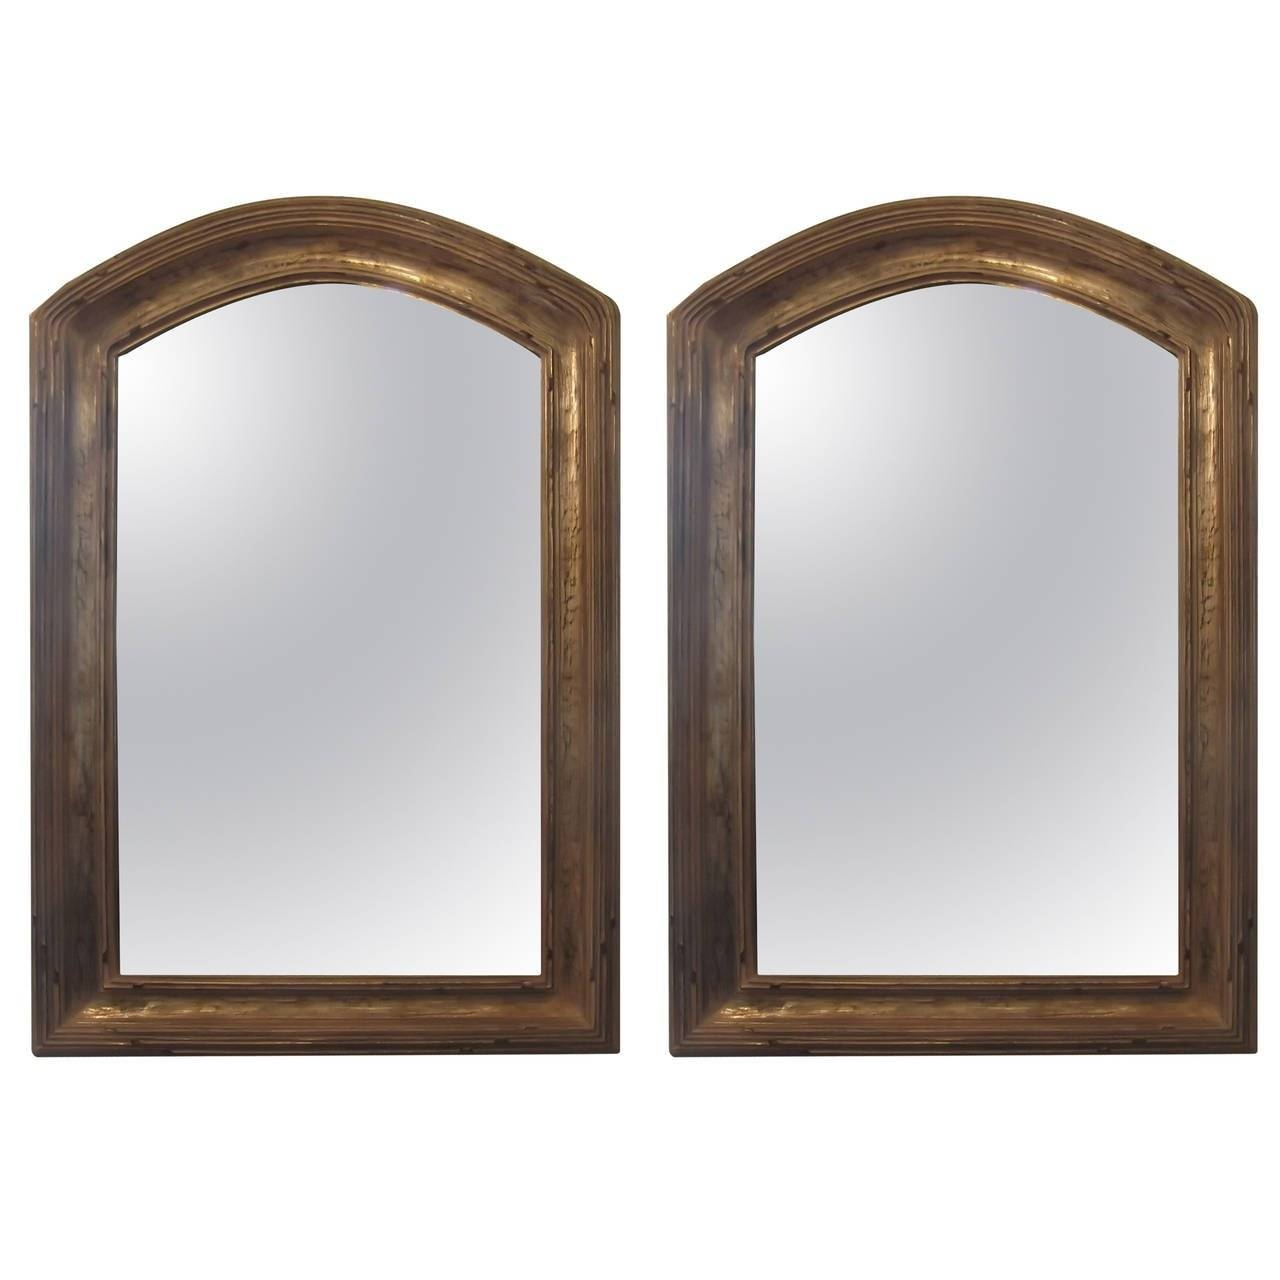 Pair Of Giltwood Arched Top Mirrors At 1Stdibs intended for Arched Mirrors (Image 22 of 25)